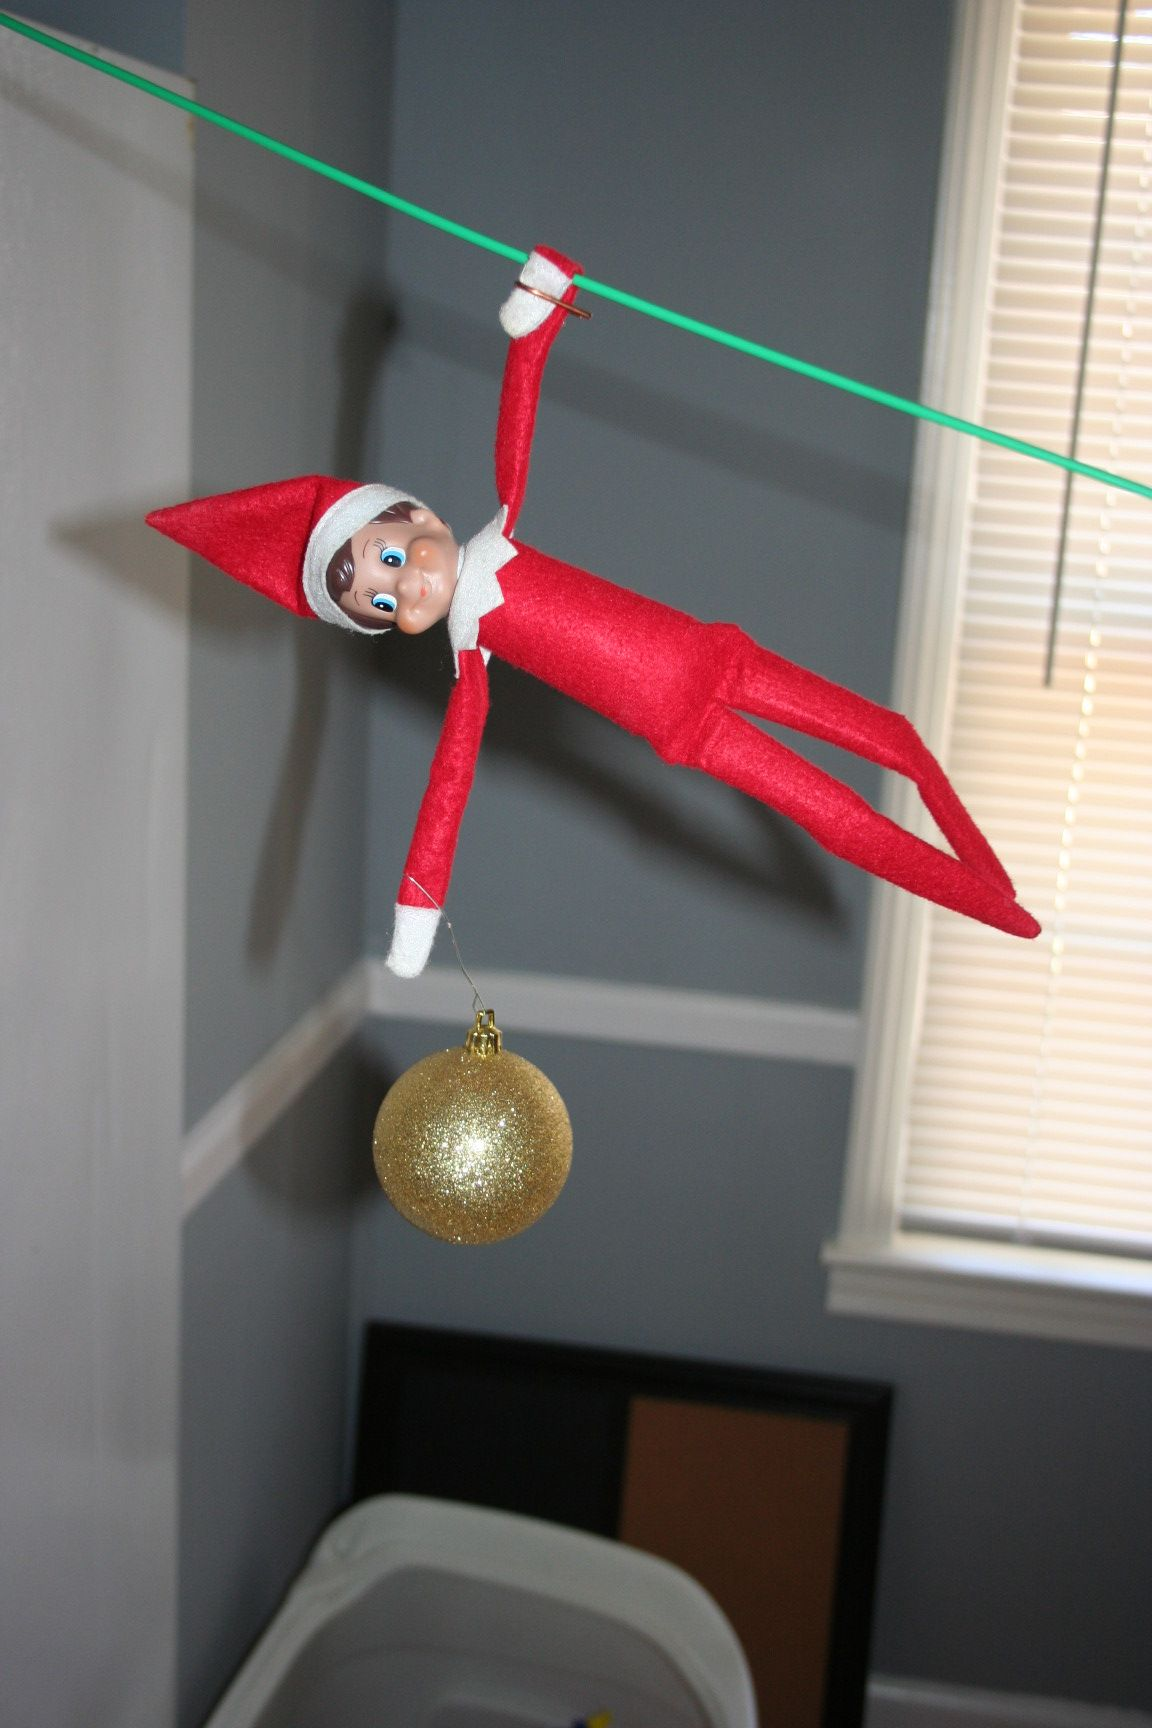 Elf on a Shelf Zip Lines to the Christmas Tree